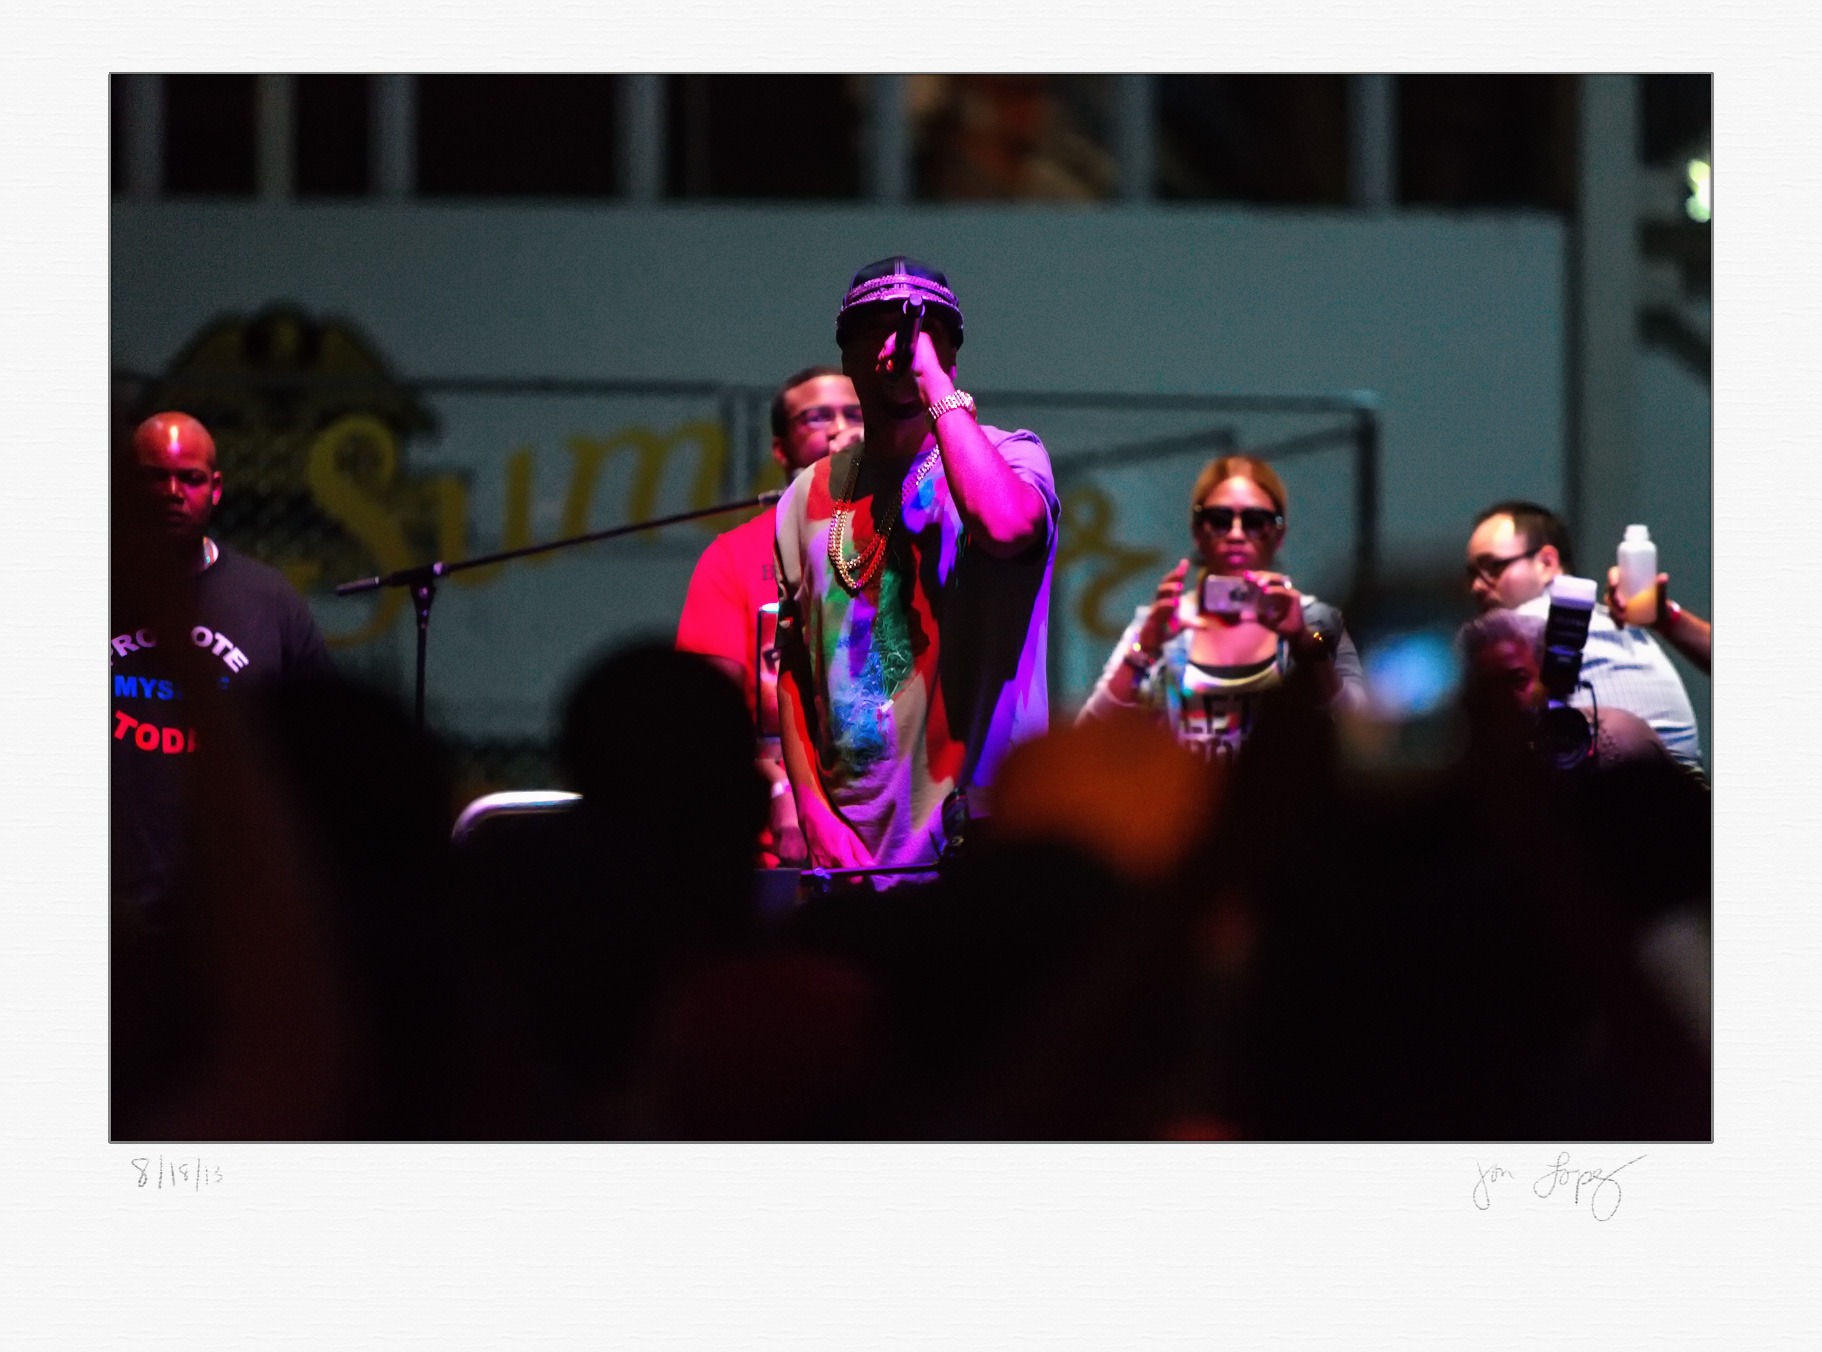 Bronx-native rapper French Montana performed some of his songs after Chicago won the championship.